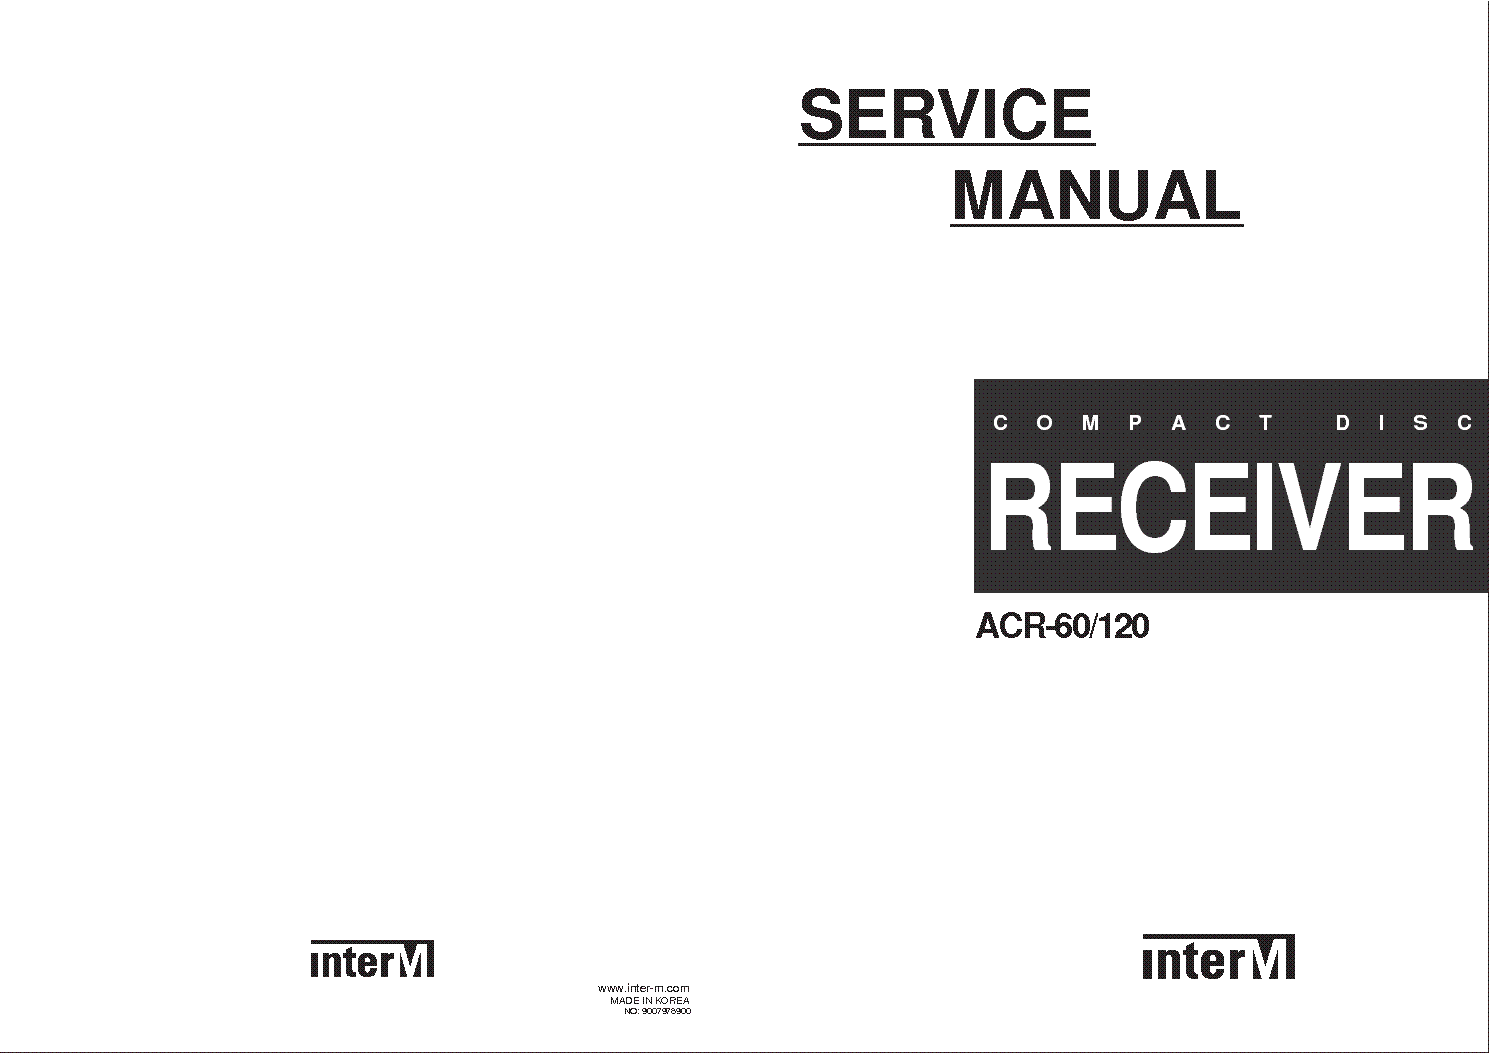 INTERM ACR-60 120 VD0304 Service Manual download